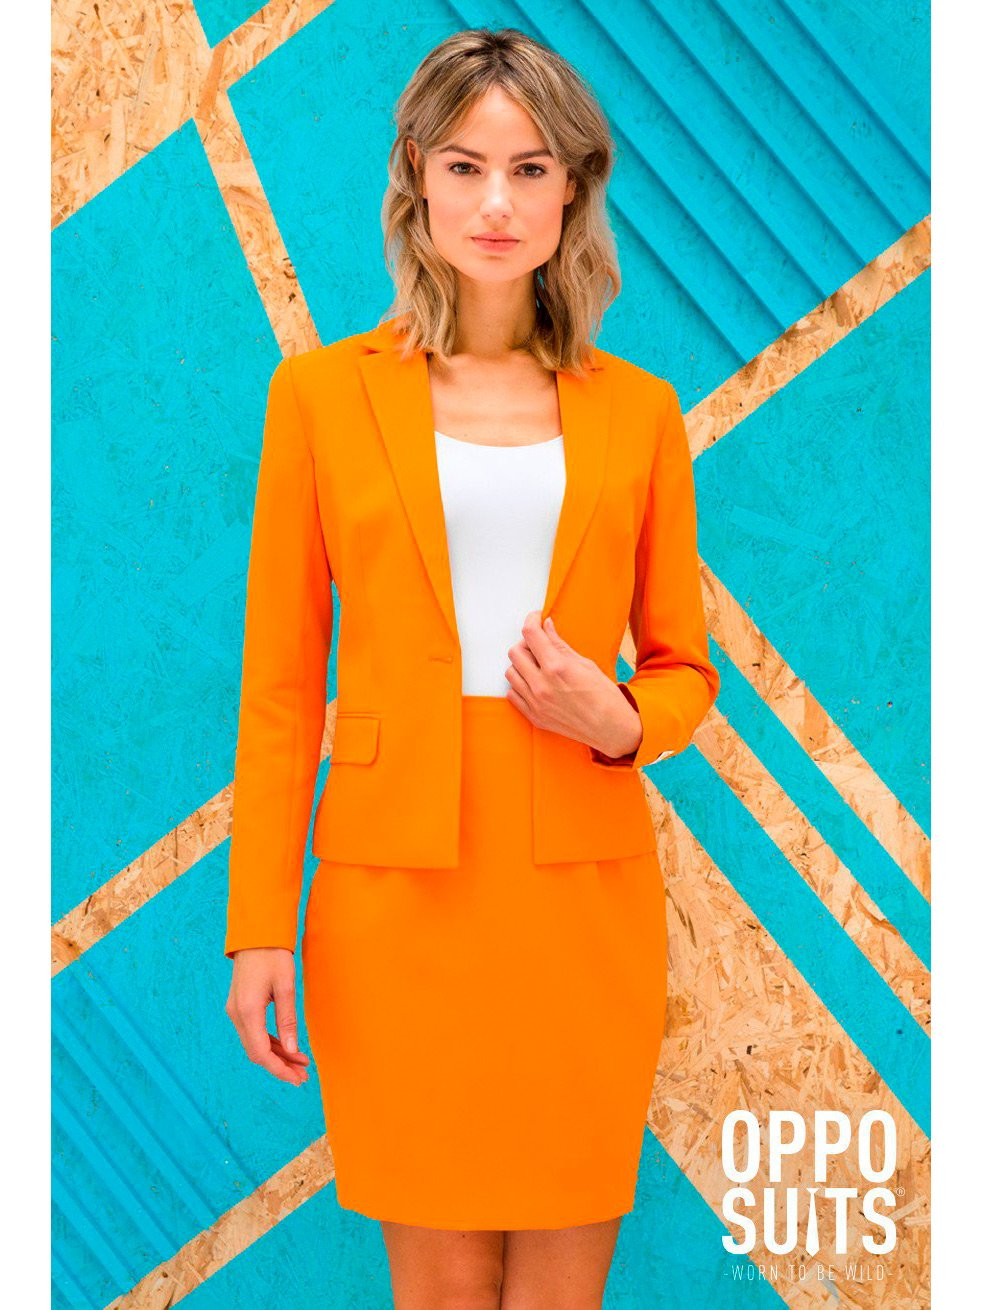 Opposuits Womens Solid Color Suit Party Suit by